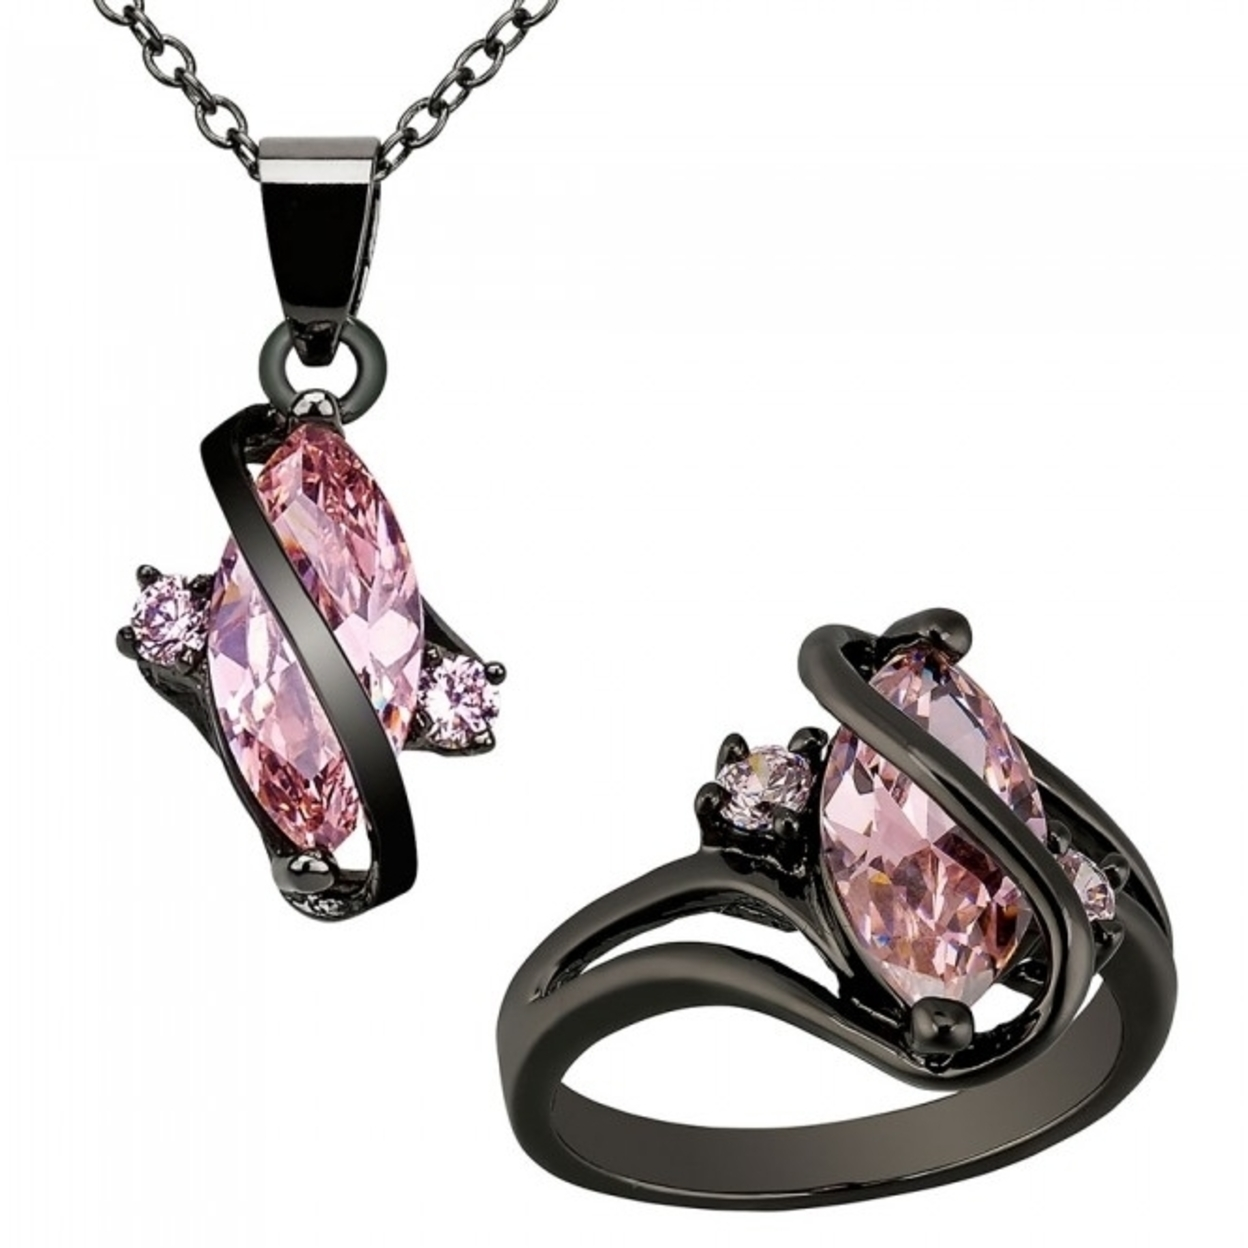 5.0 Carat Marquis Cut Pink Sapphire 10k Black Gold Filled Pendant & Ring Set Size-k-16mm-cc261-cc296